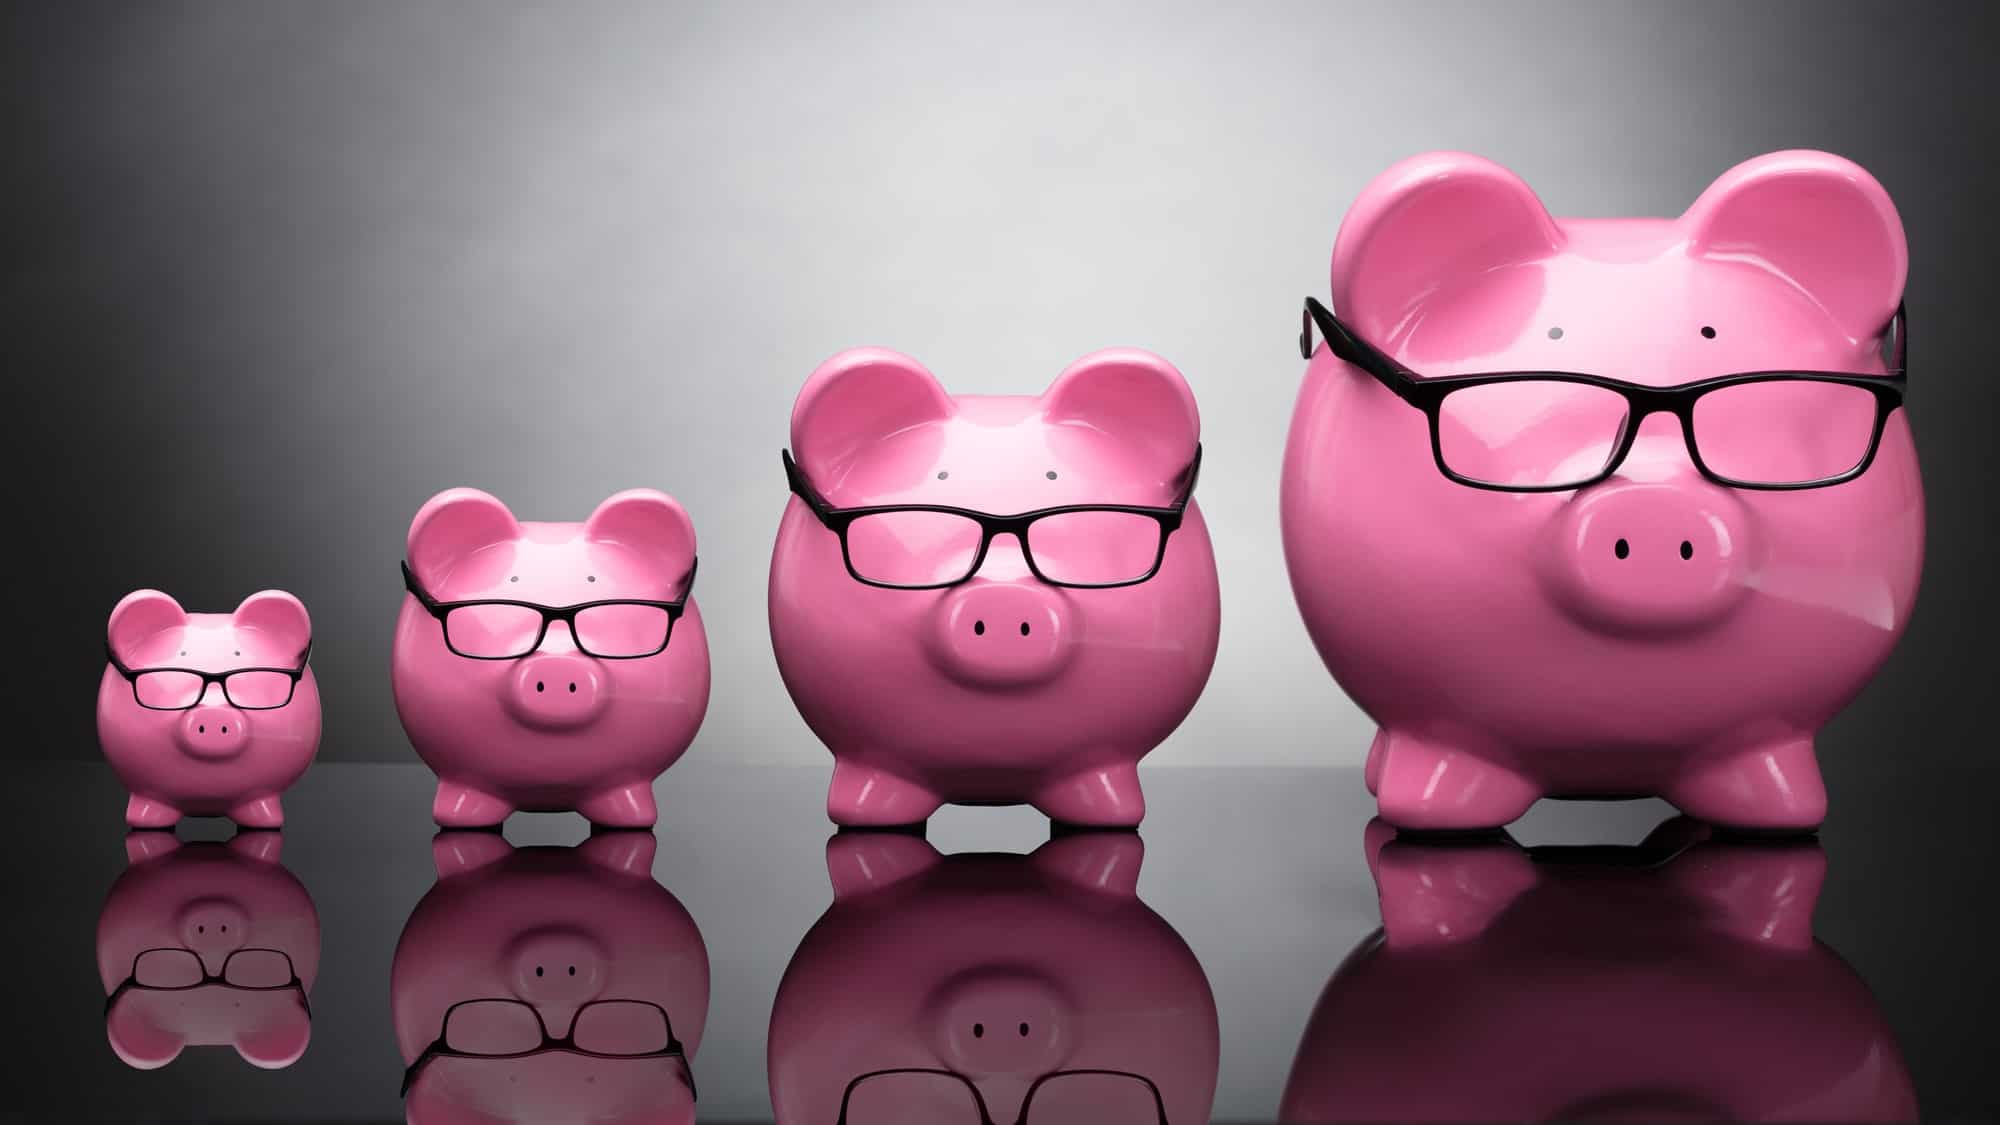 A row a pink piggy banks ranging in size from small to big, indicating ASX share price and dividends growth CBA bank dividend increase